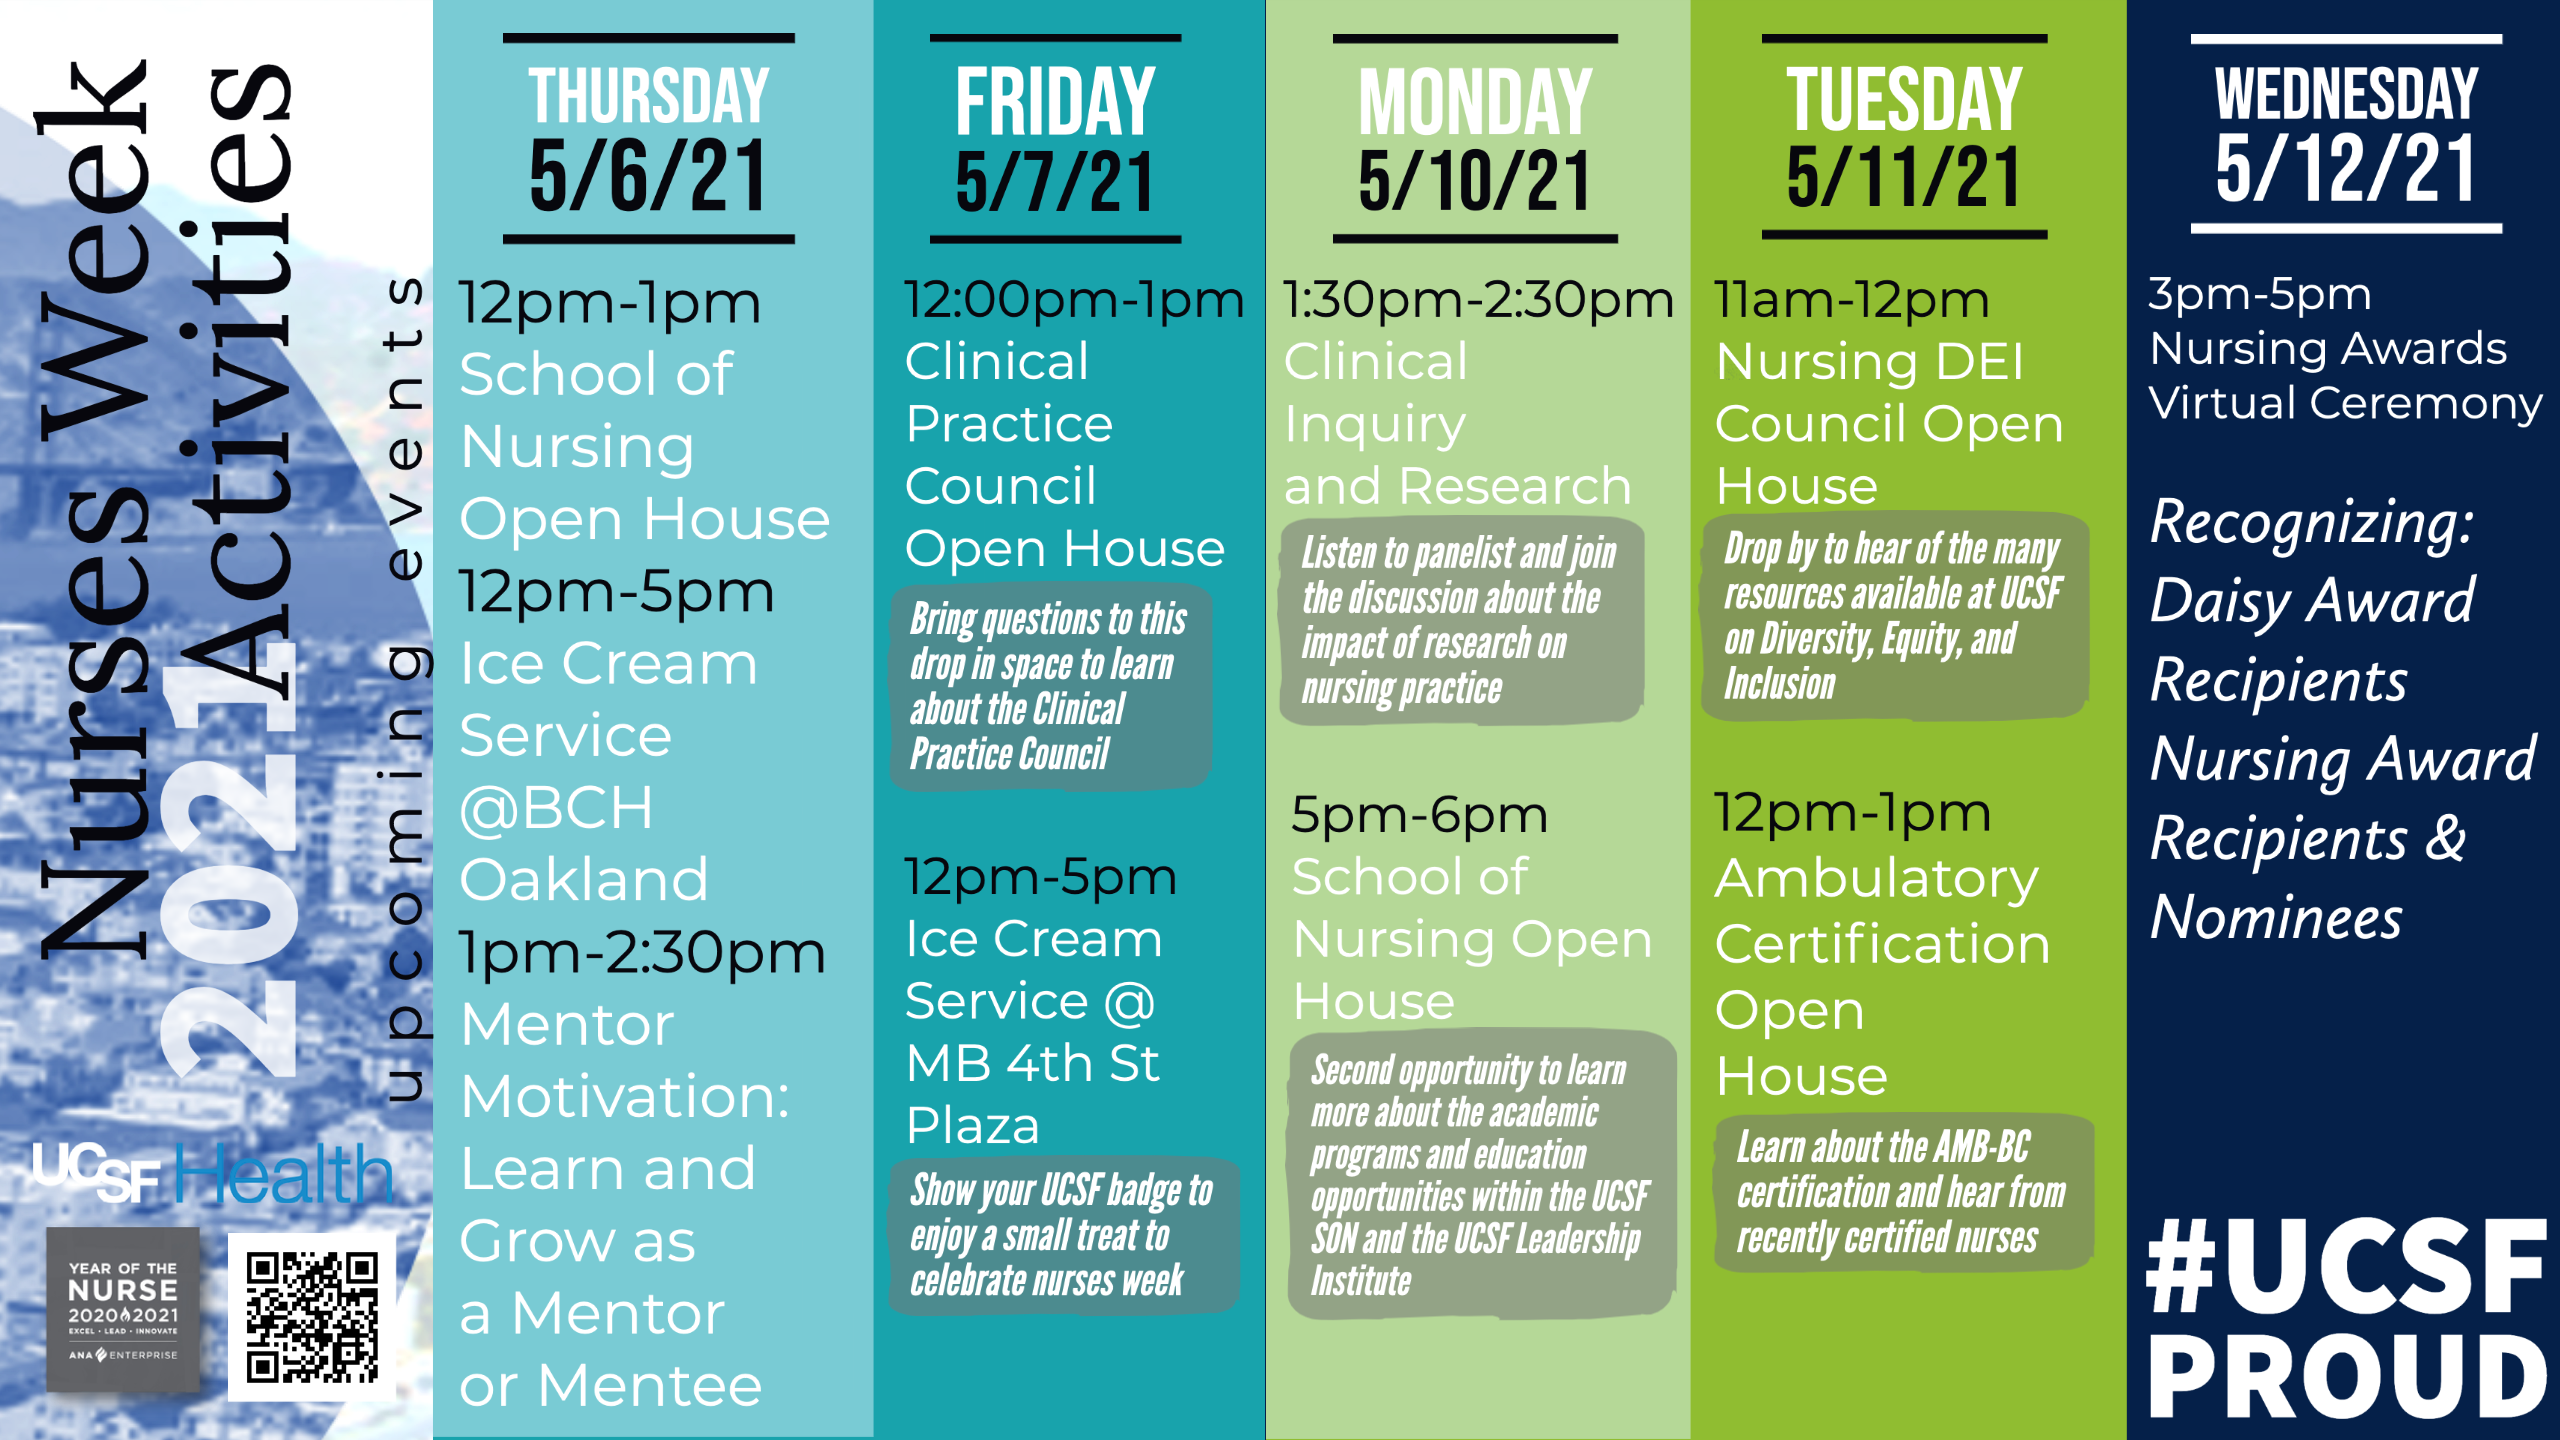 2021 UCSF Nurses Week Flyer of Events